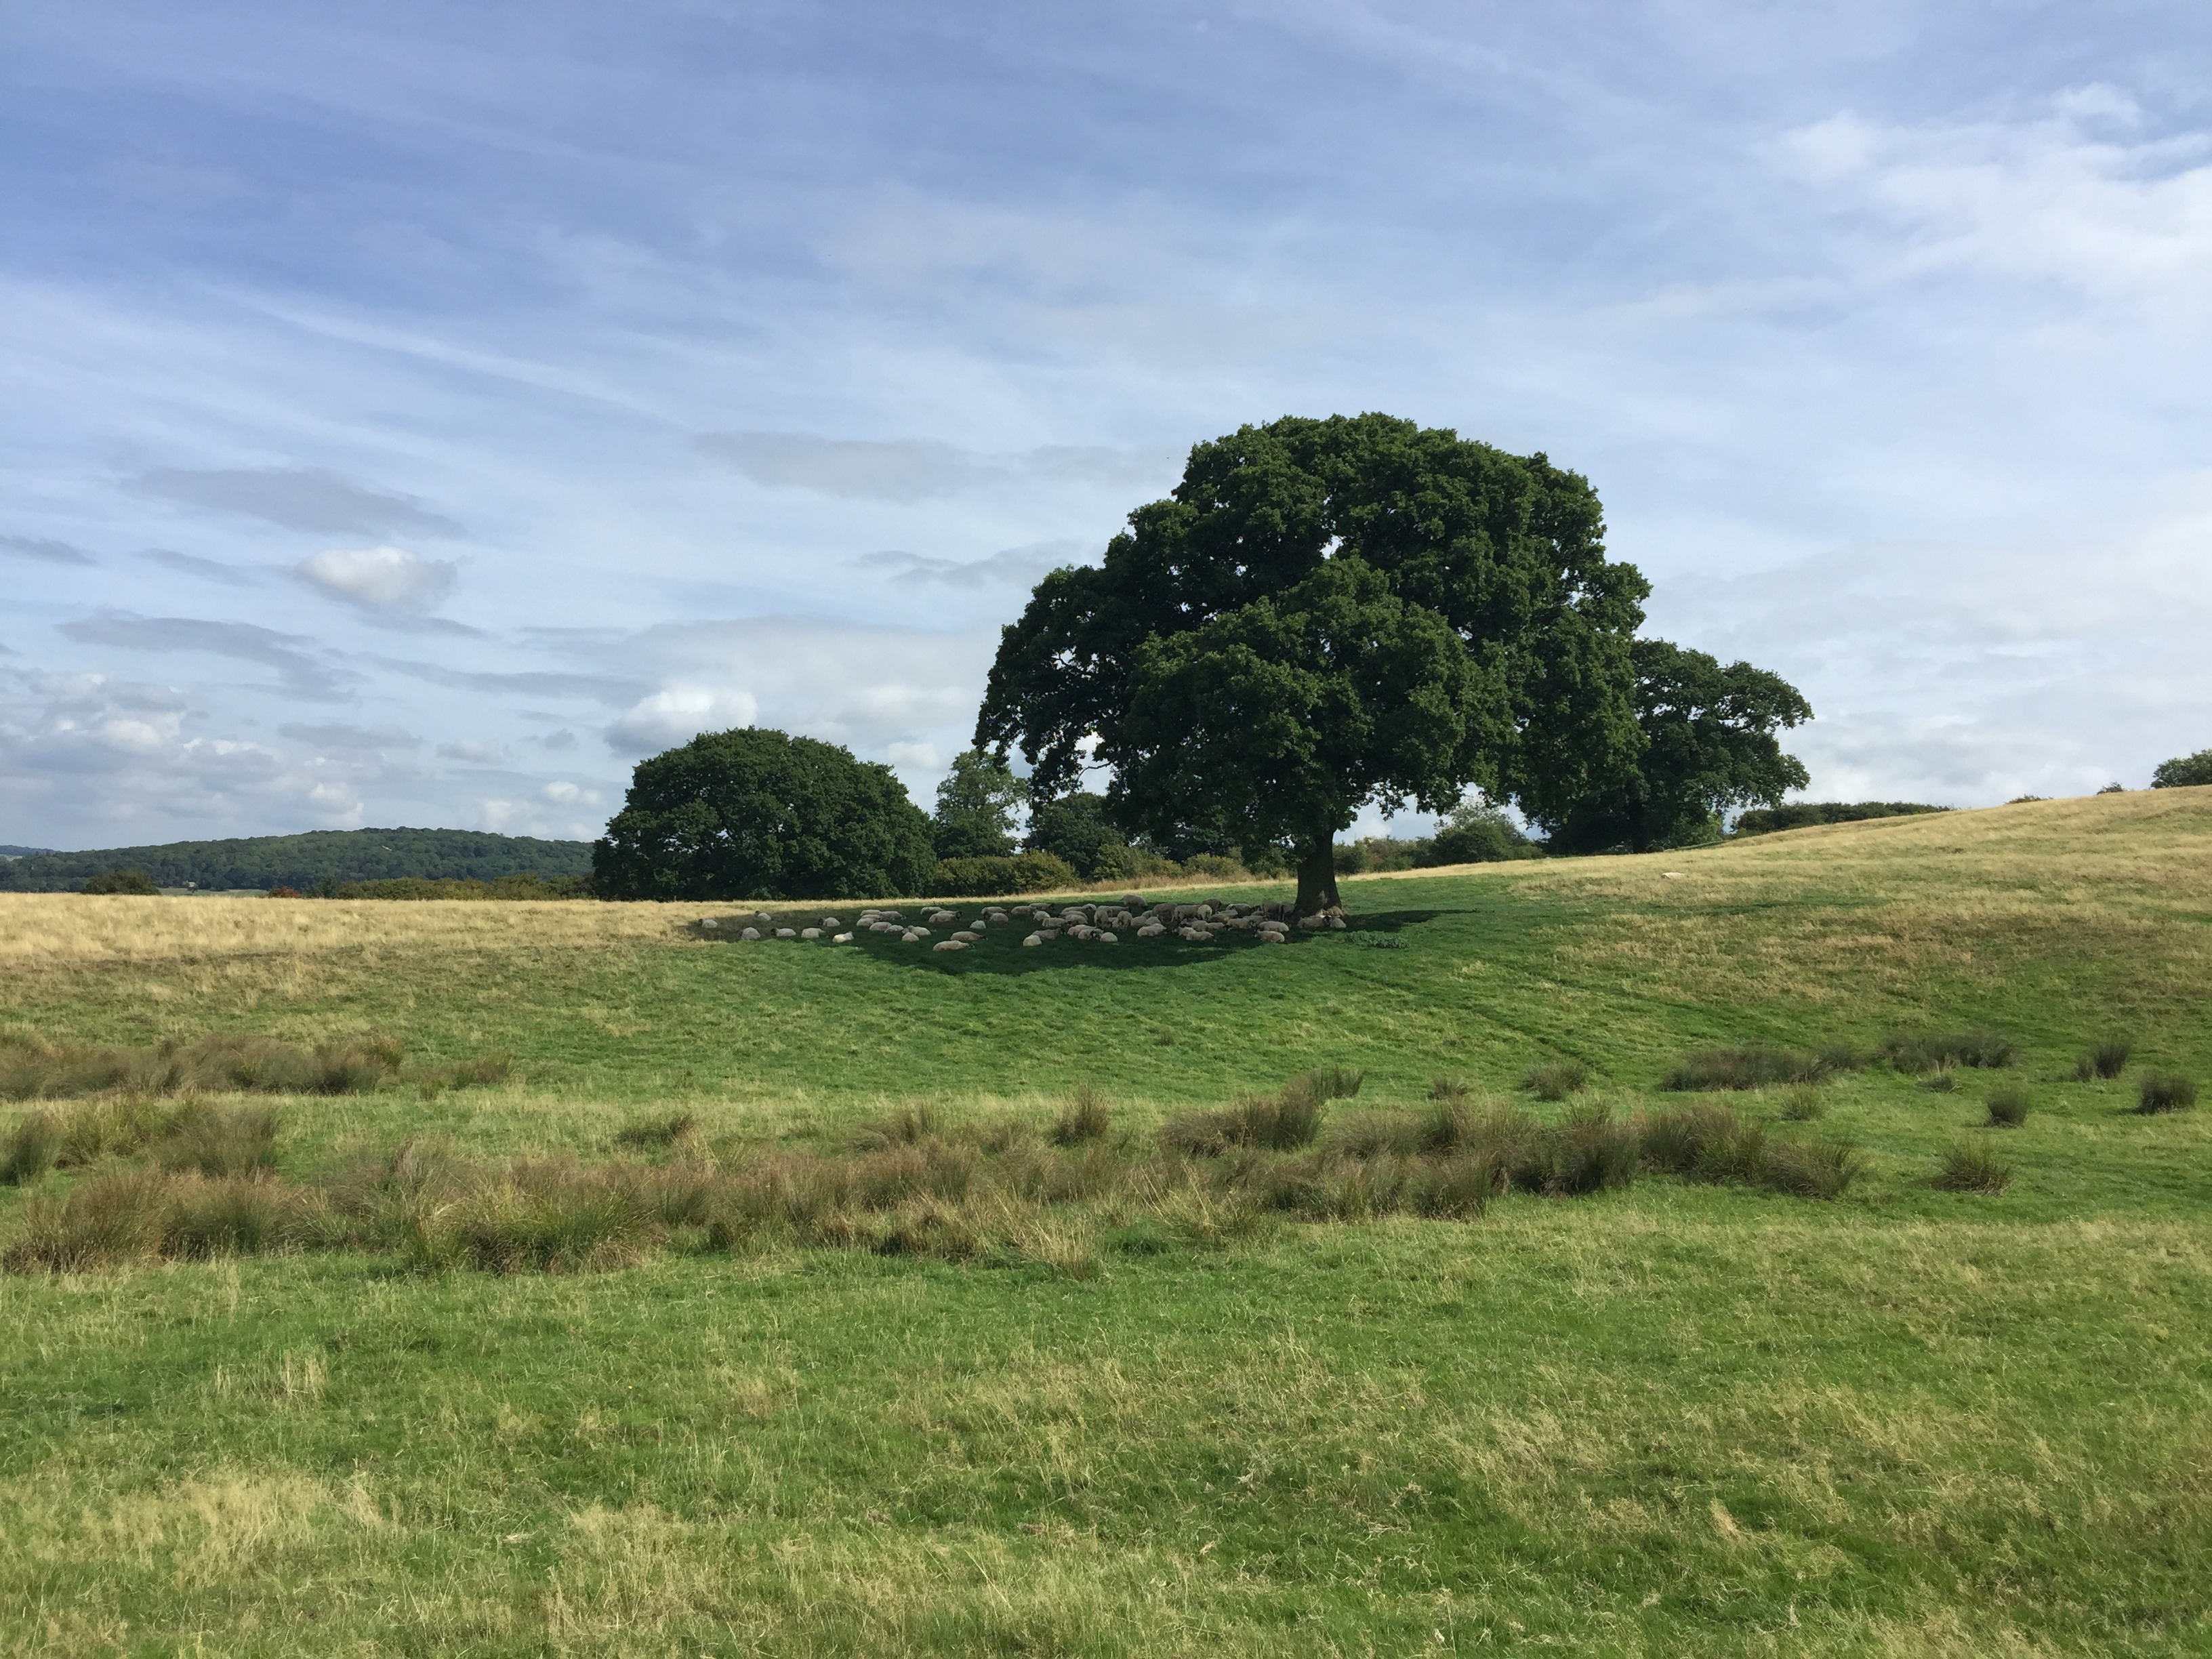 Cotswold Way tree